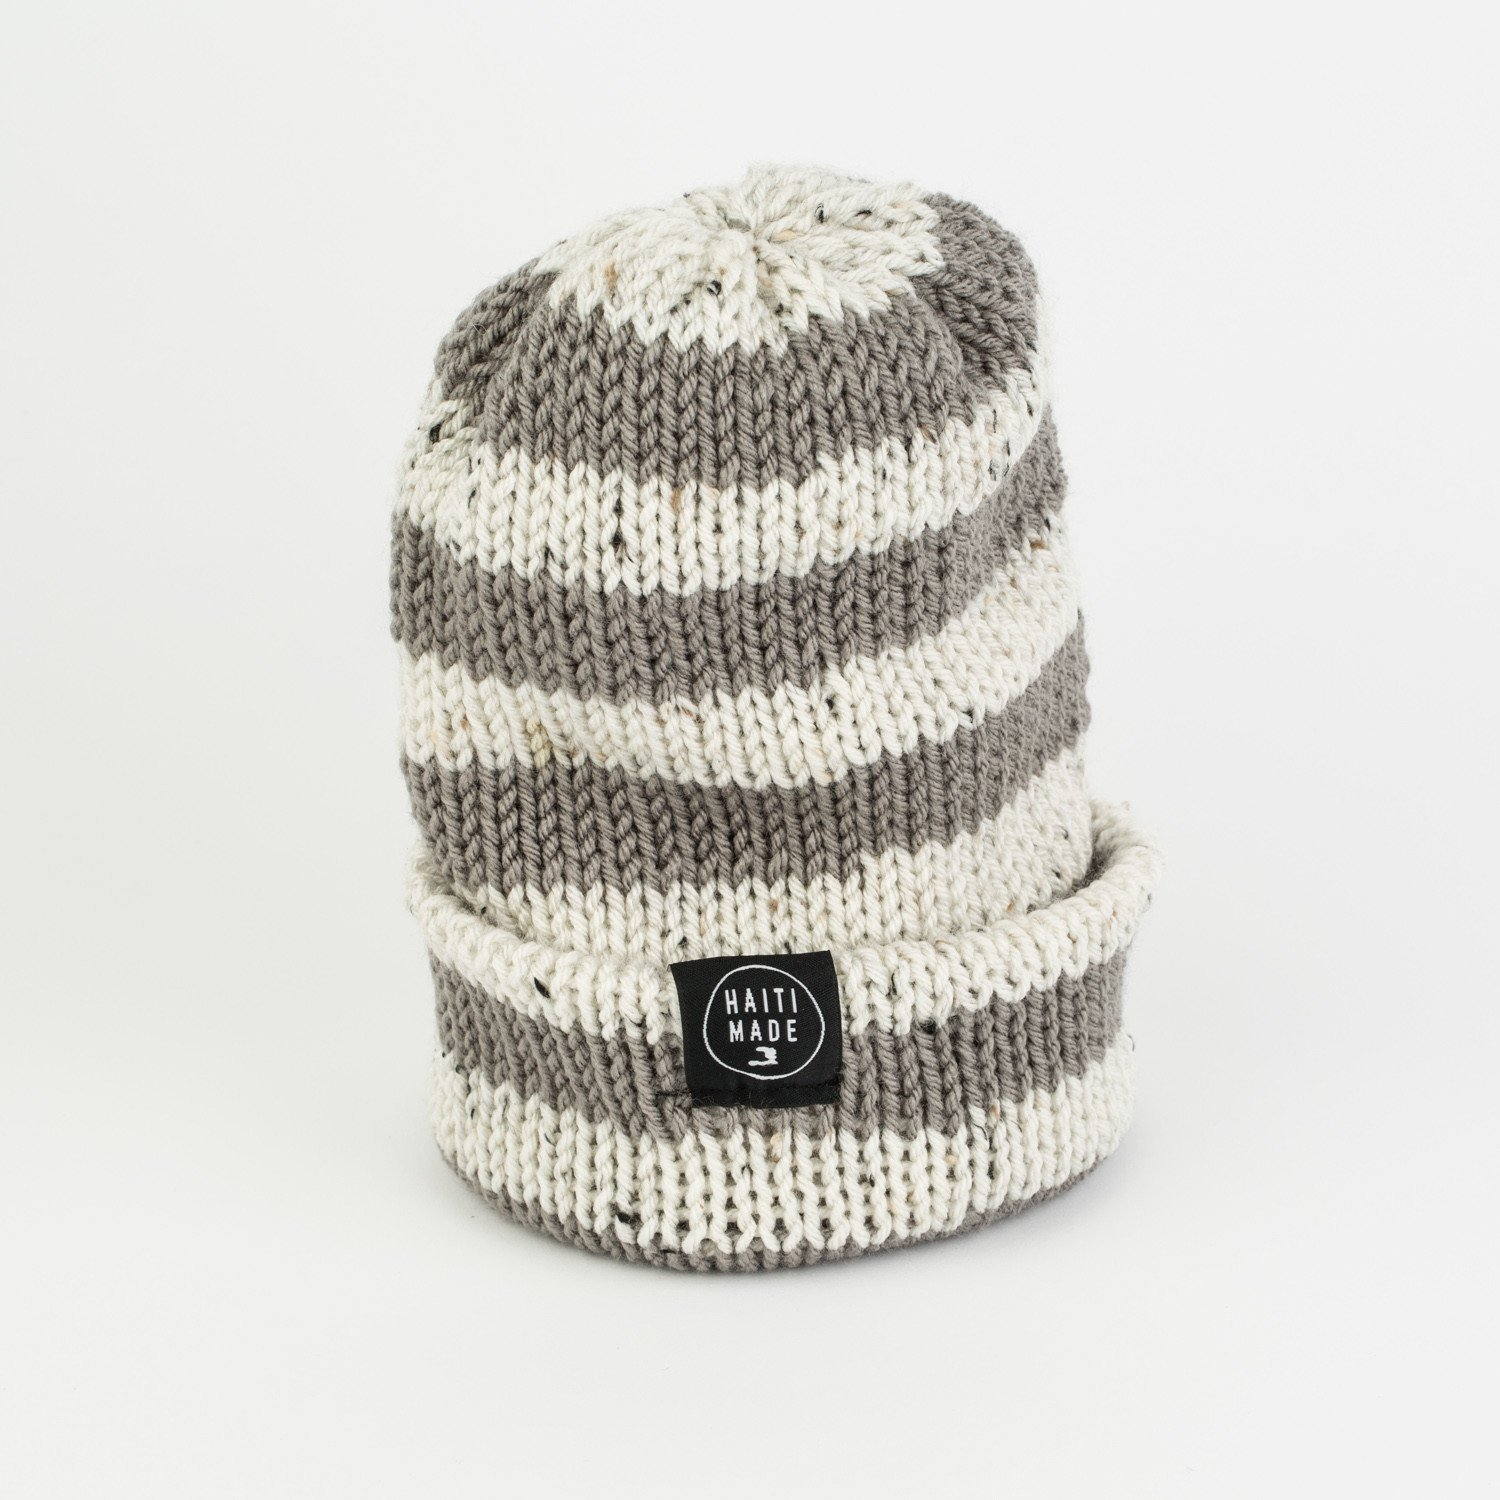 Ethically Made Beanies